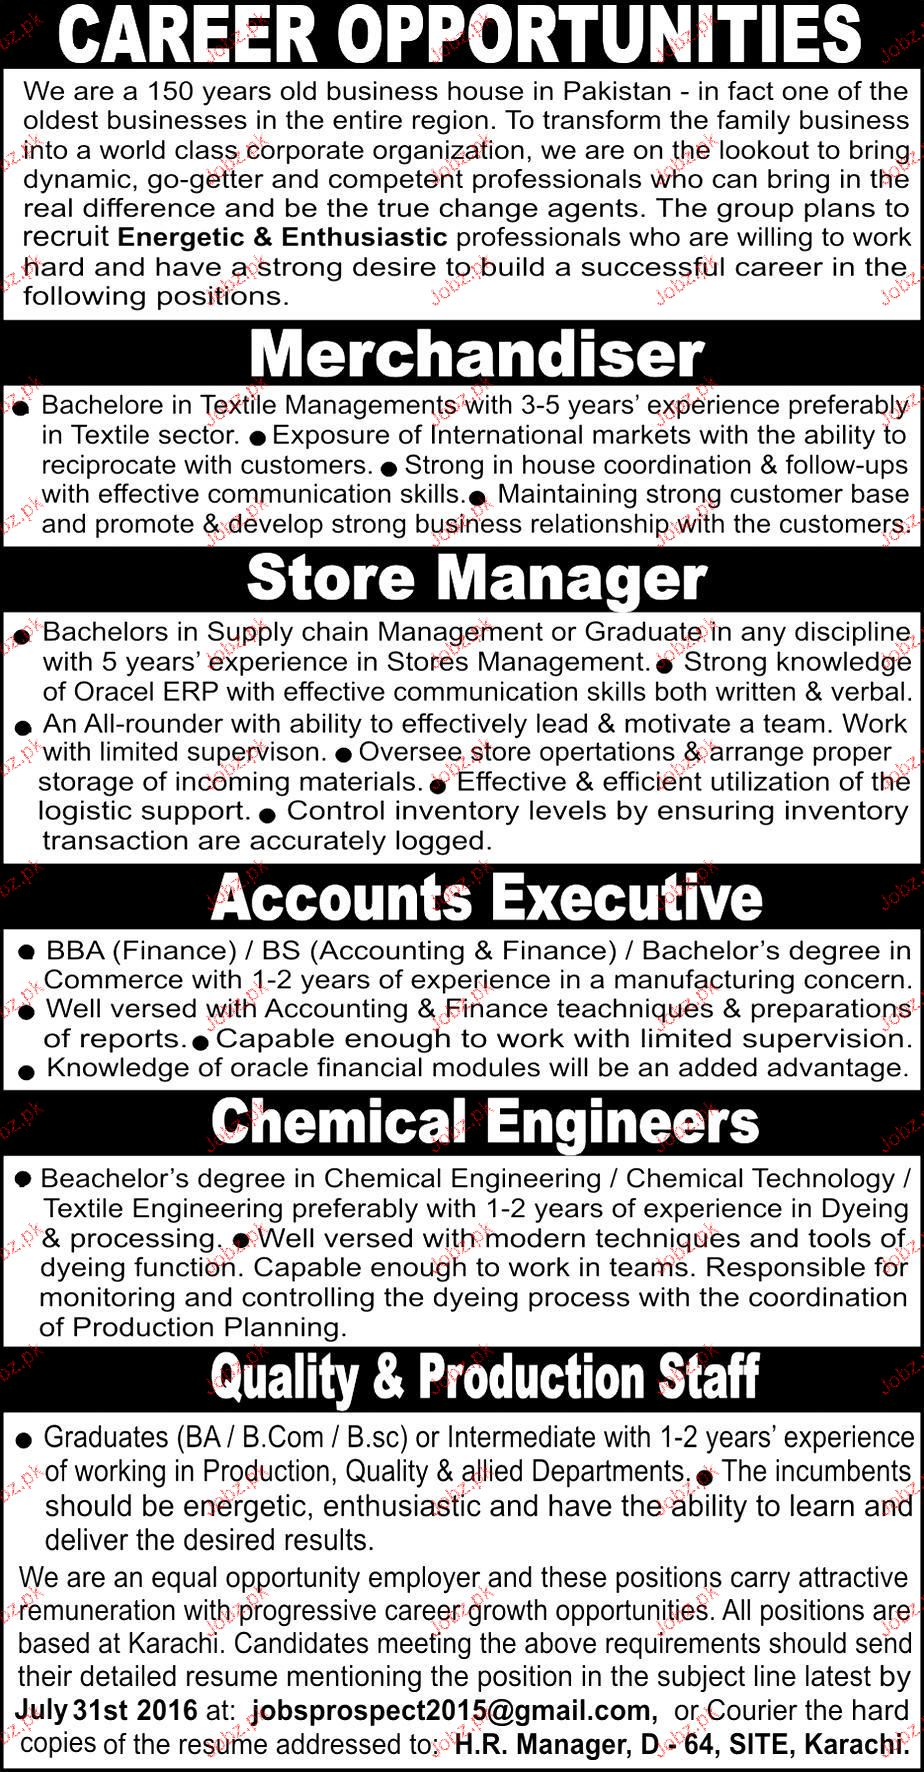 Merchandisers, Store Manager Job Opportunity